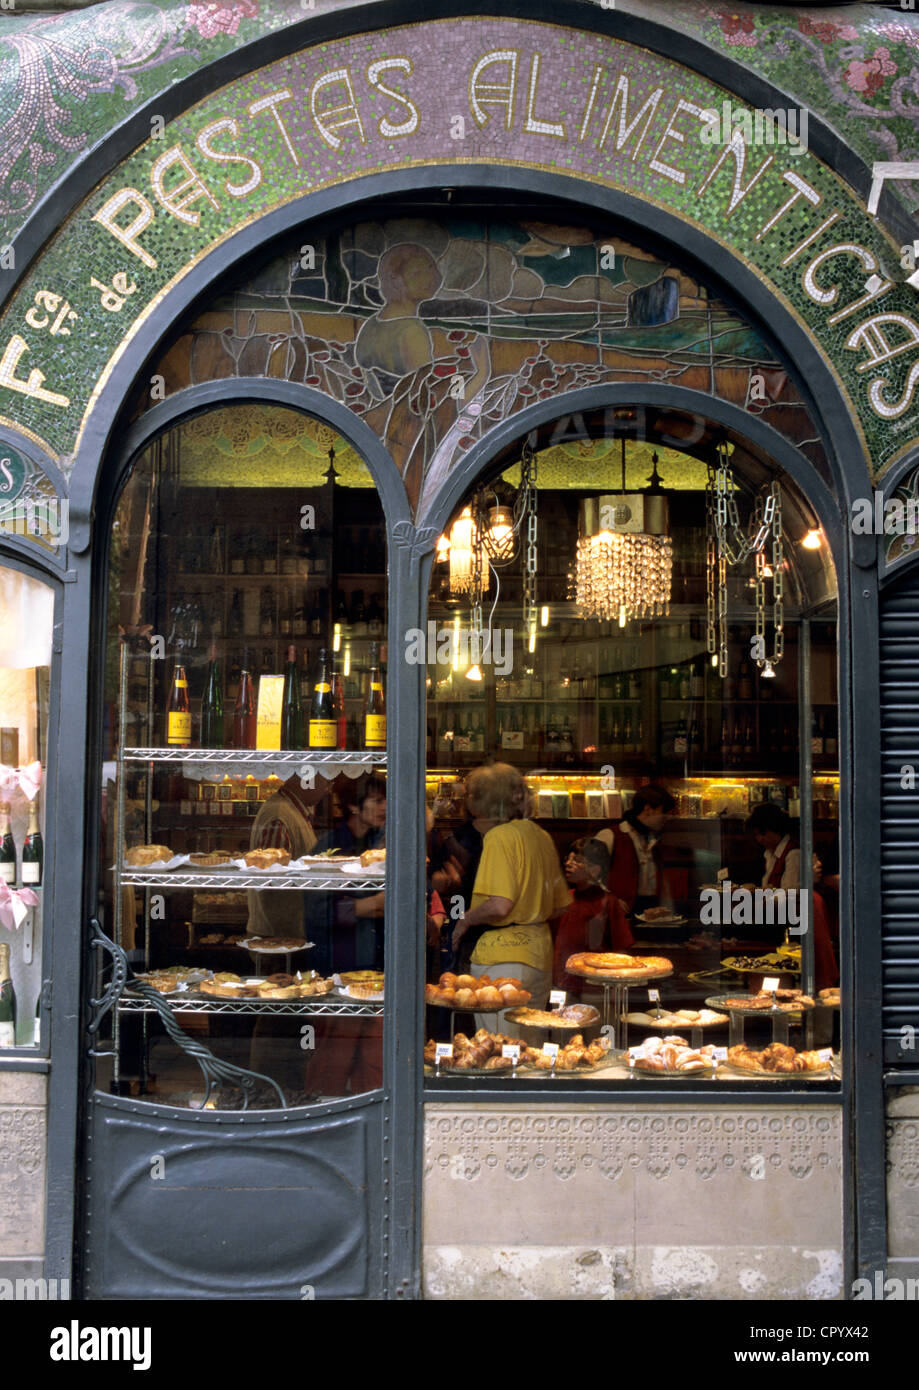 Spain Catalonia Barcelona Las Ramblas Escriba cake shop and chocolate maker facade with Modernista architecture - Stock Image